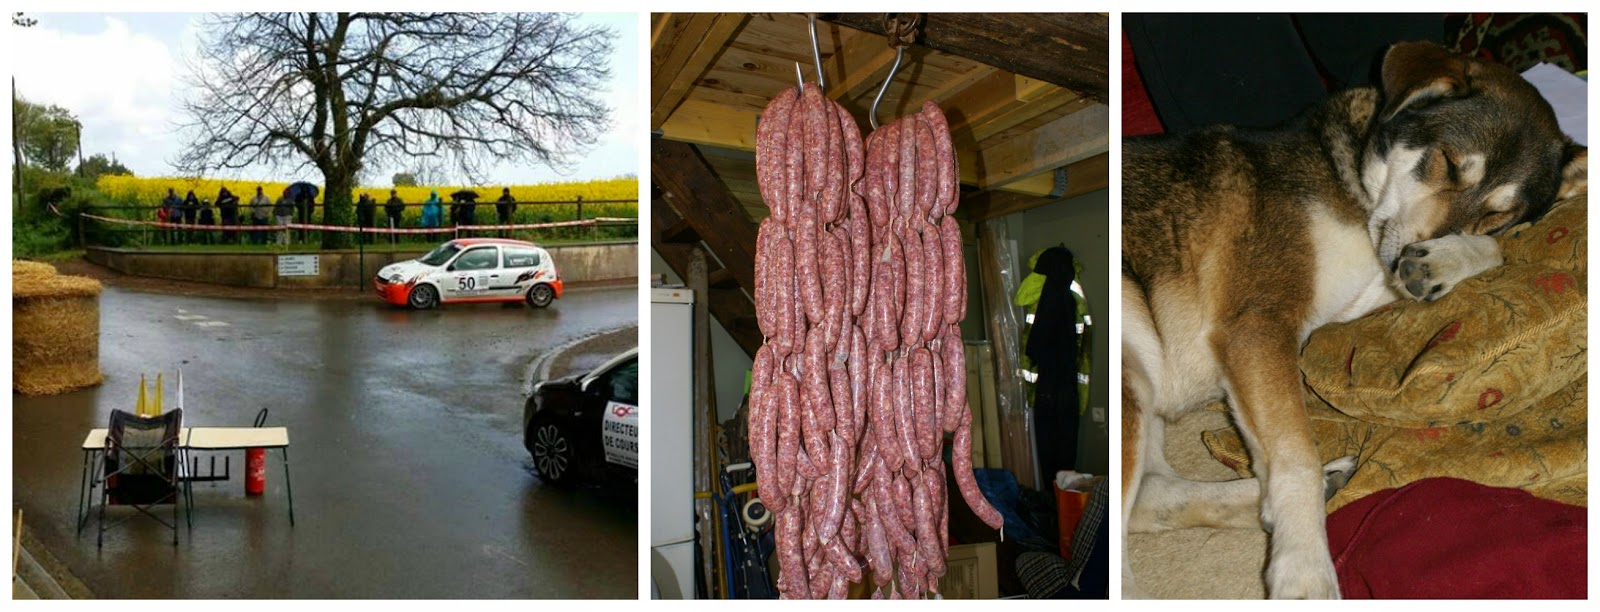 Cars, pigs and a bad few days for the dog!